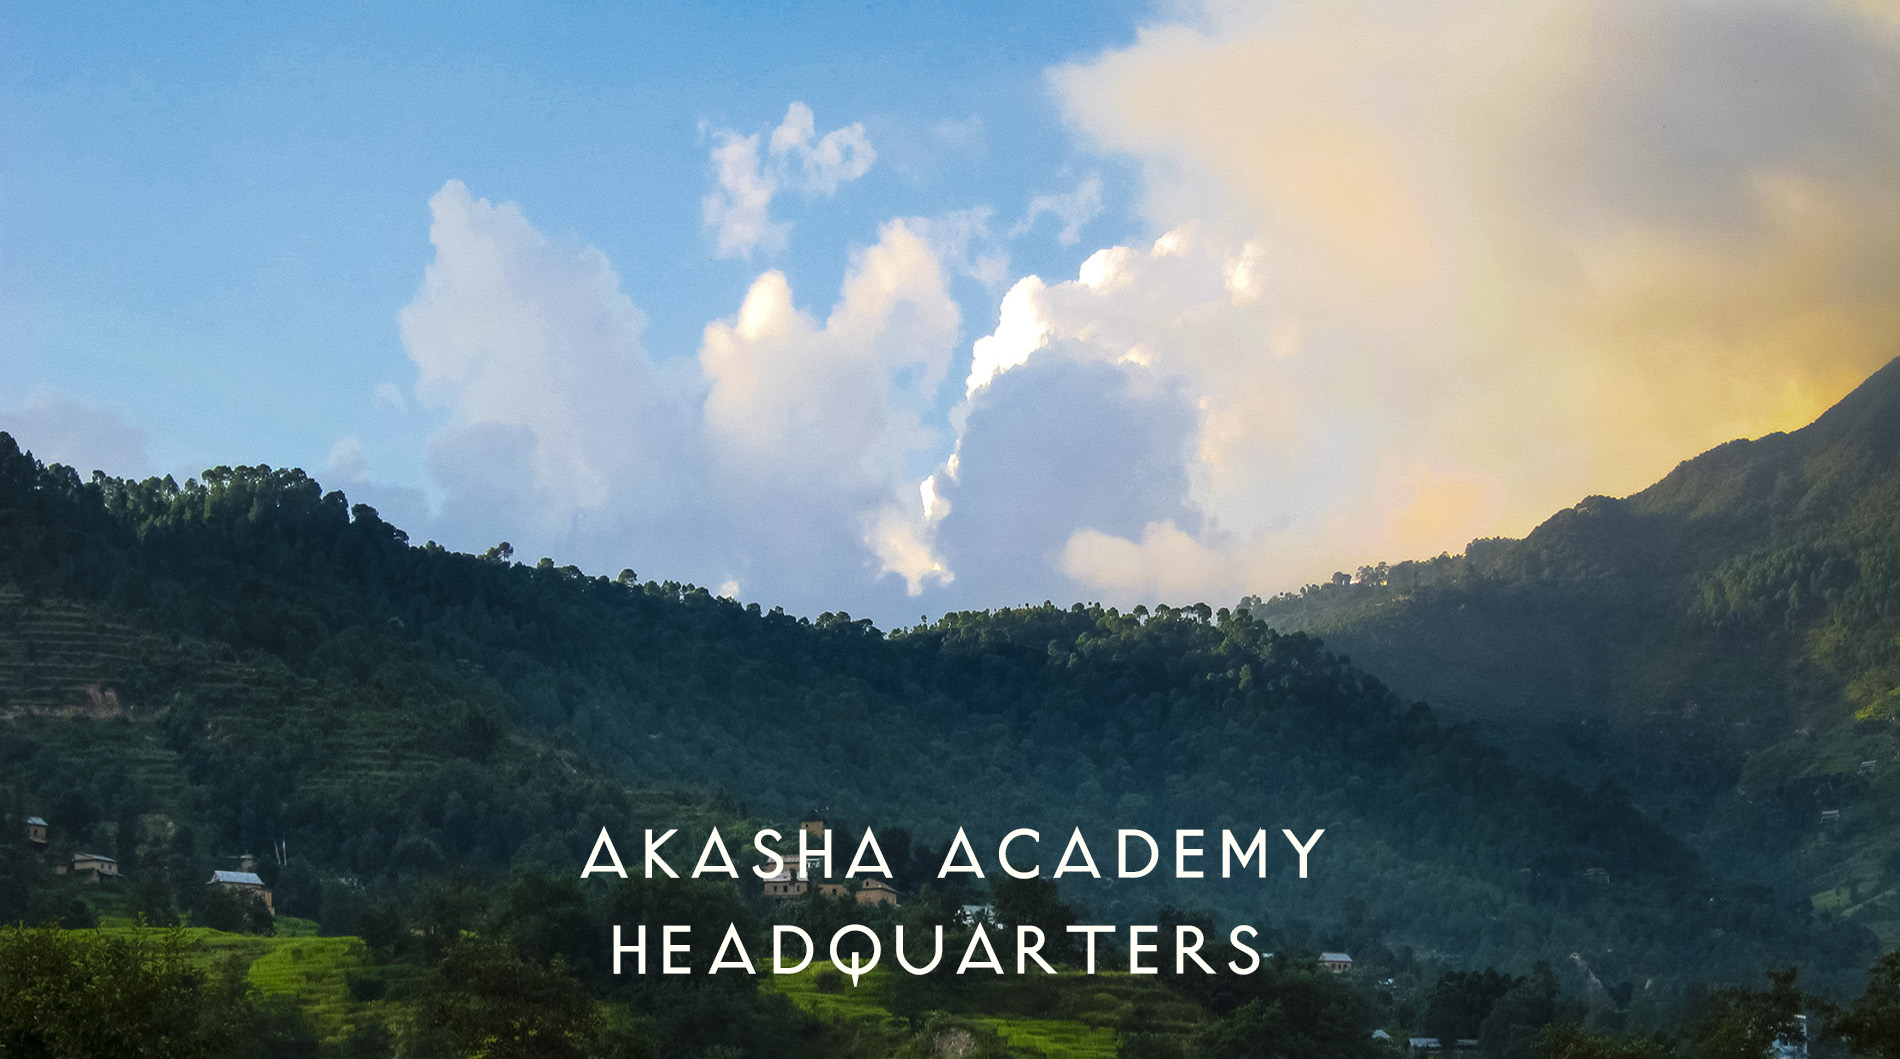 Akasha Academy Headquarters, Nepal